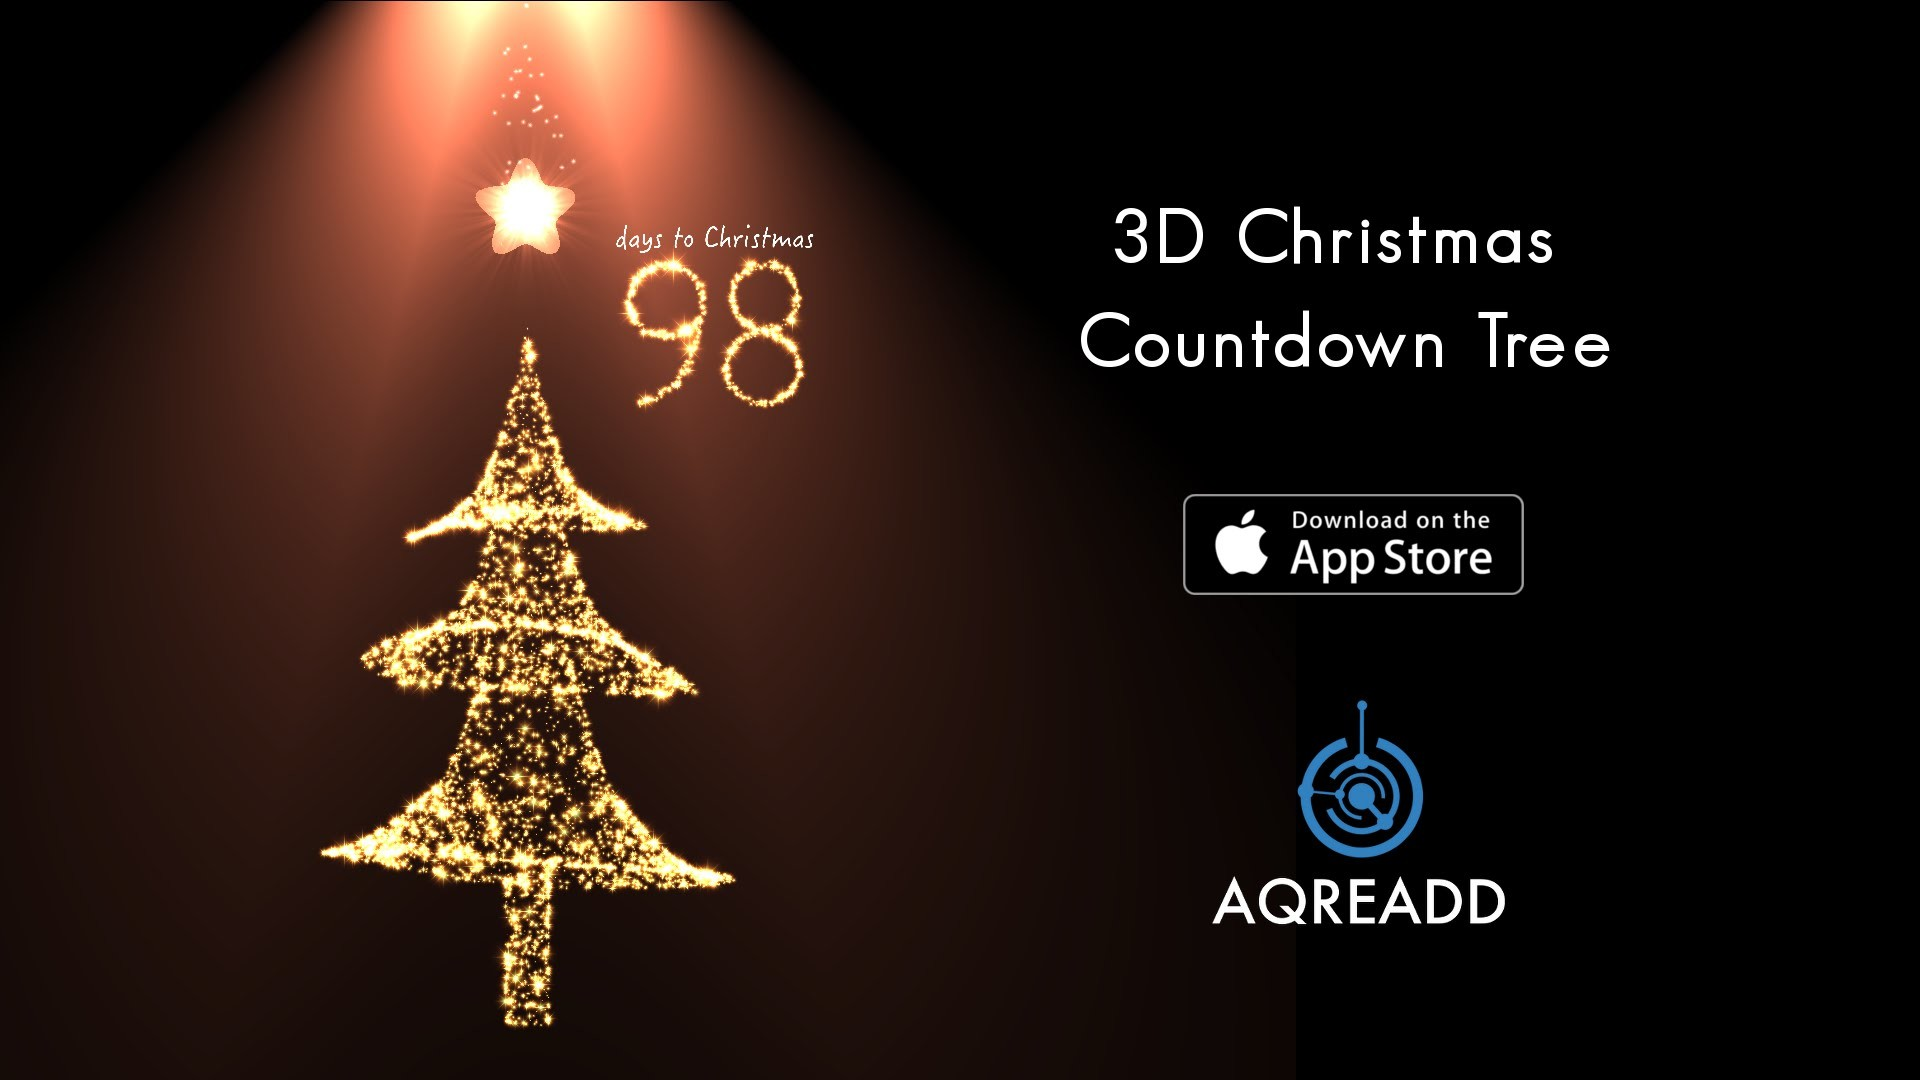 1920x1080 3D Christmas Countdown Tree for iPhone 6, iPhone 6 plus, iPhone 5s & iPad -  YouTube